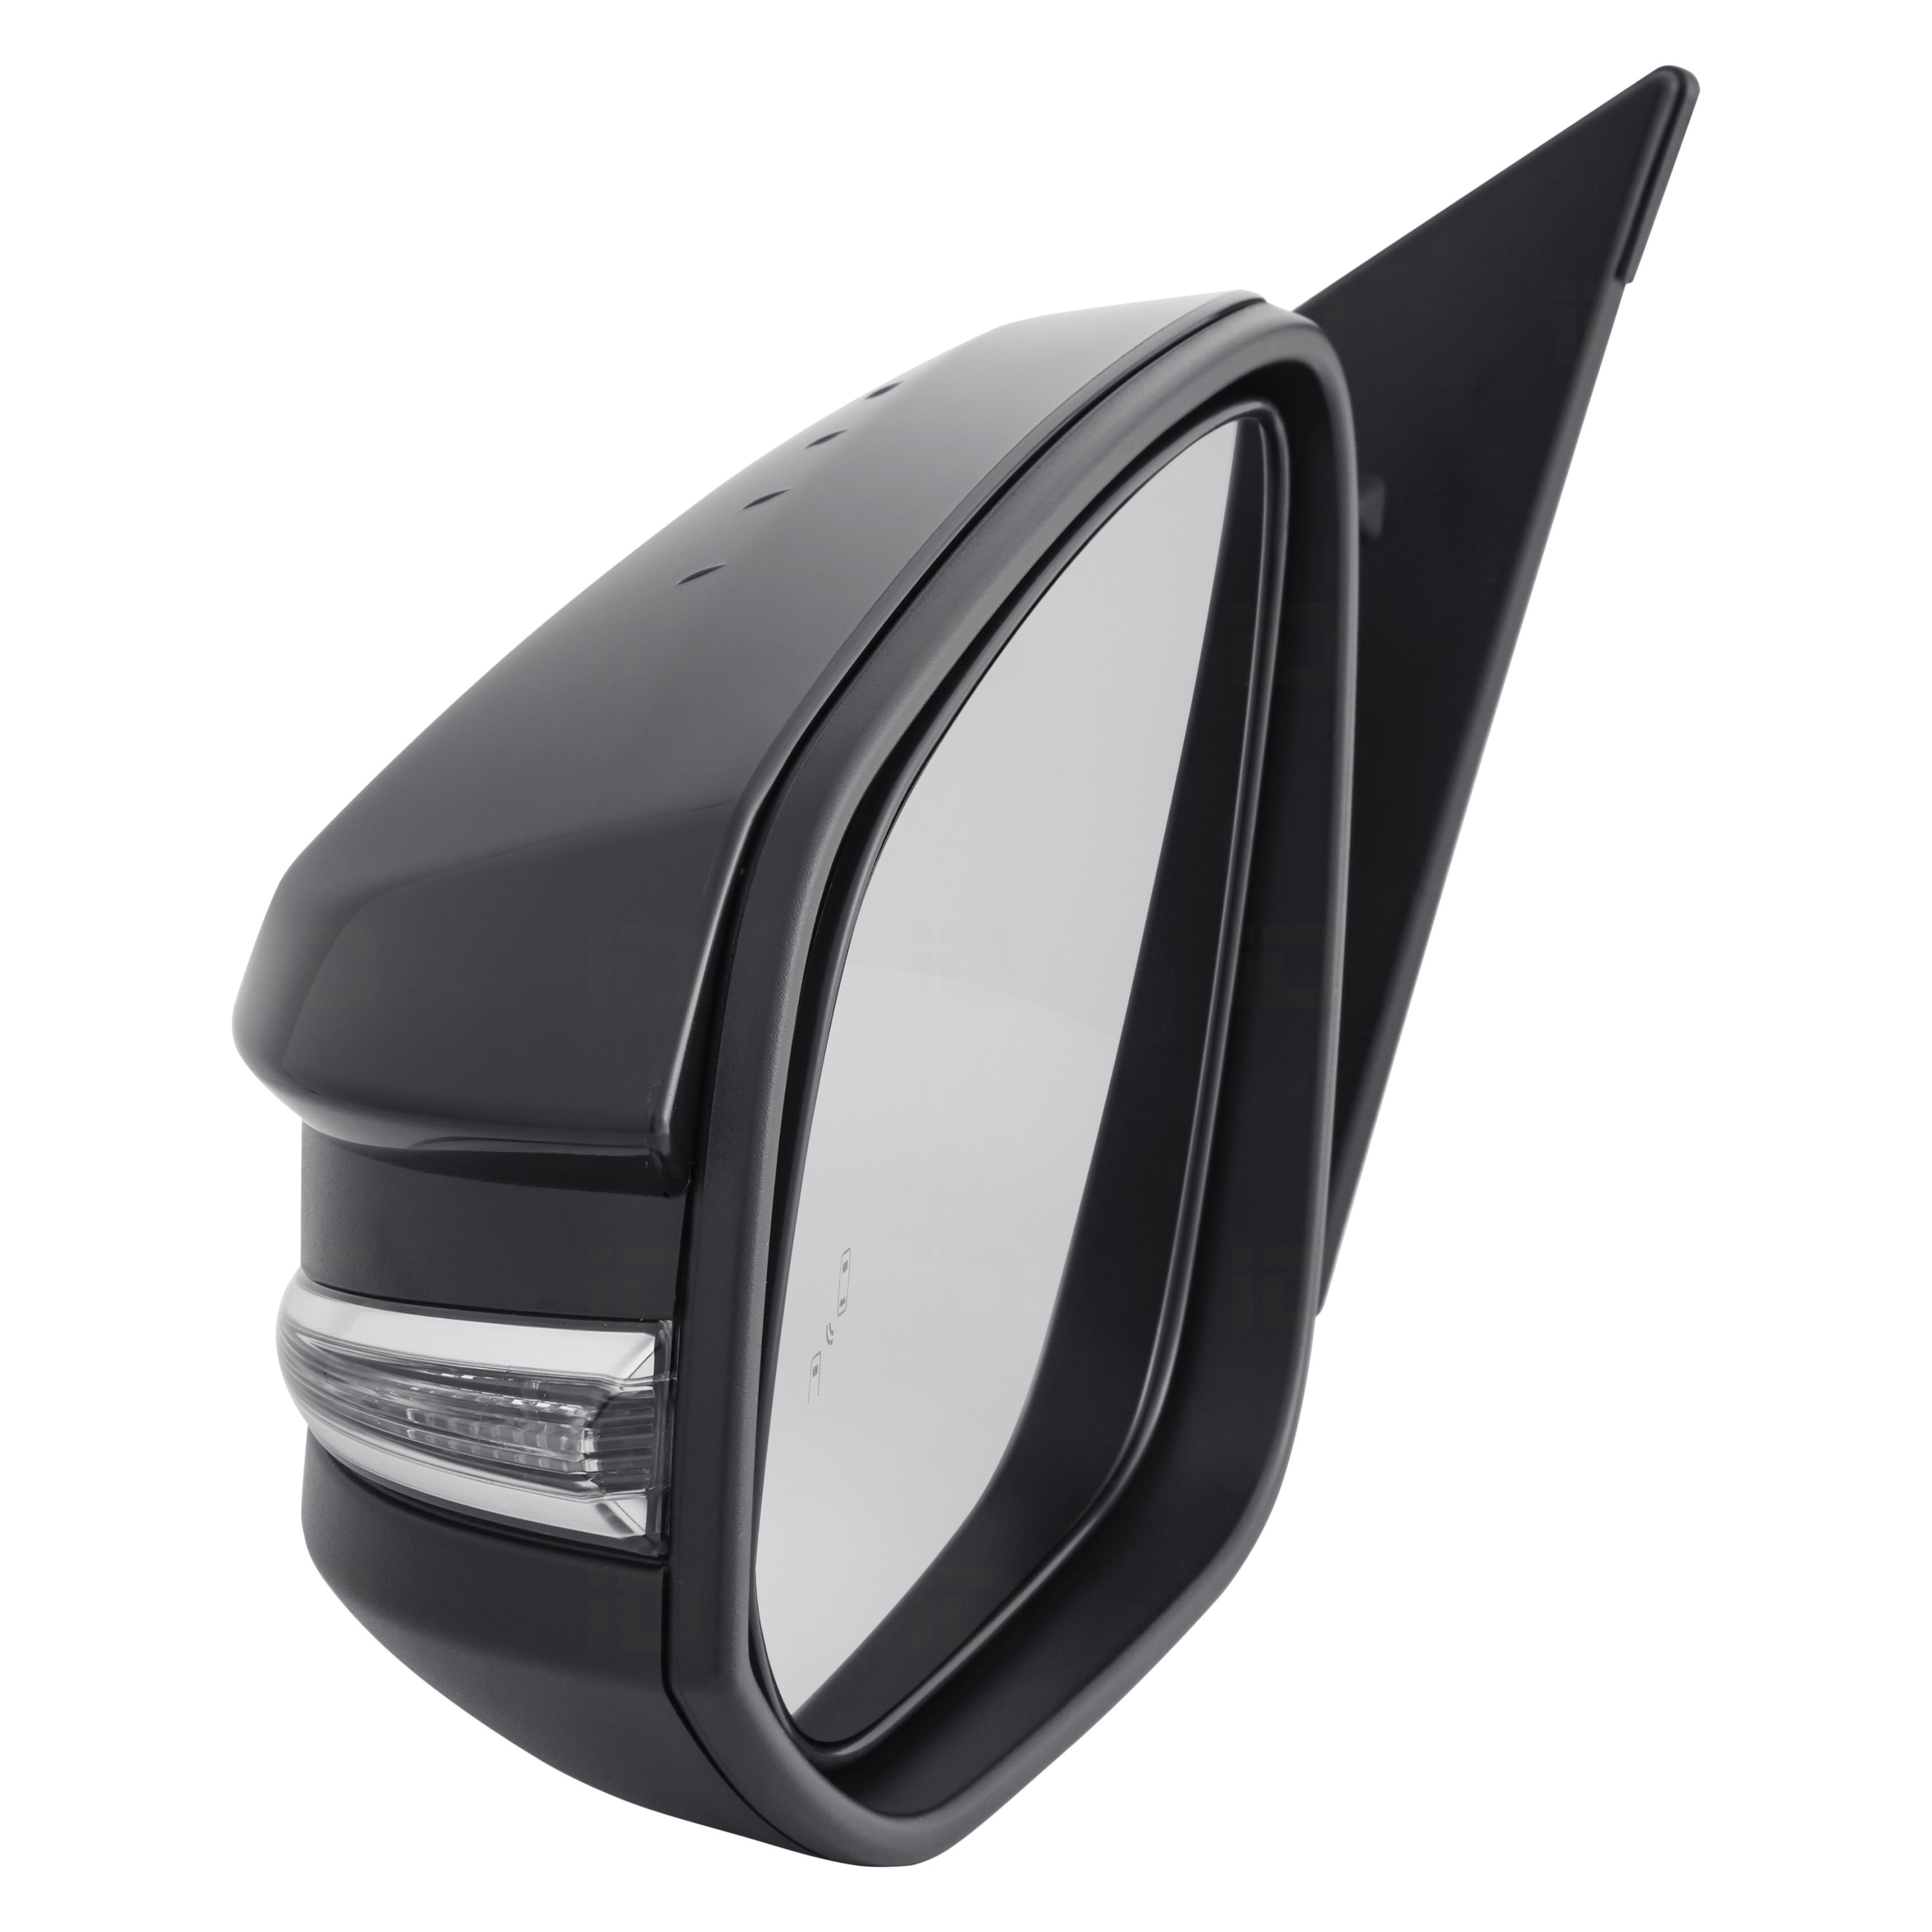 Genuine Toyota 87940-0R100-G0 Rear View Mirror Assembly